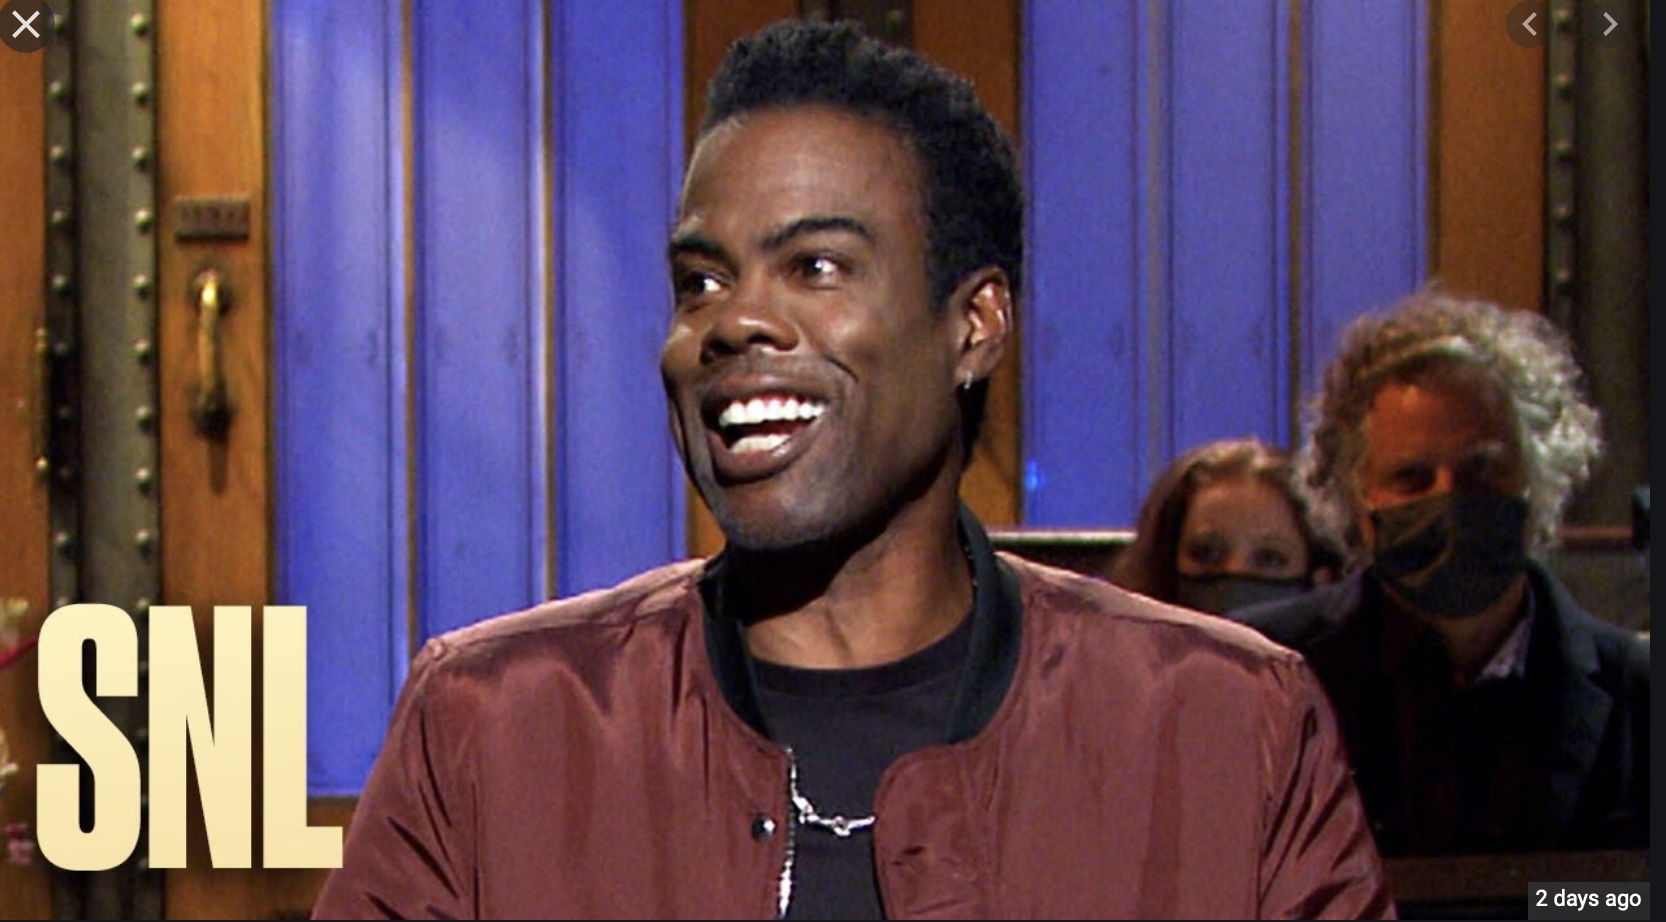 HustleTV Chris Rock Makes A Come Back On Saturday Night Live DJ Hustle